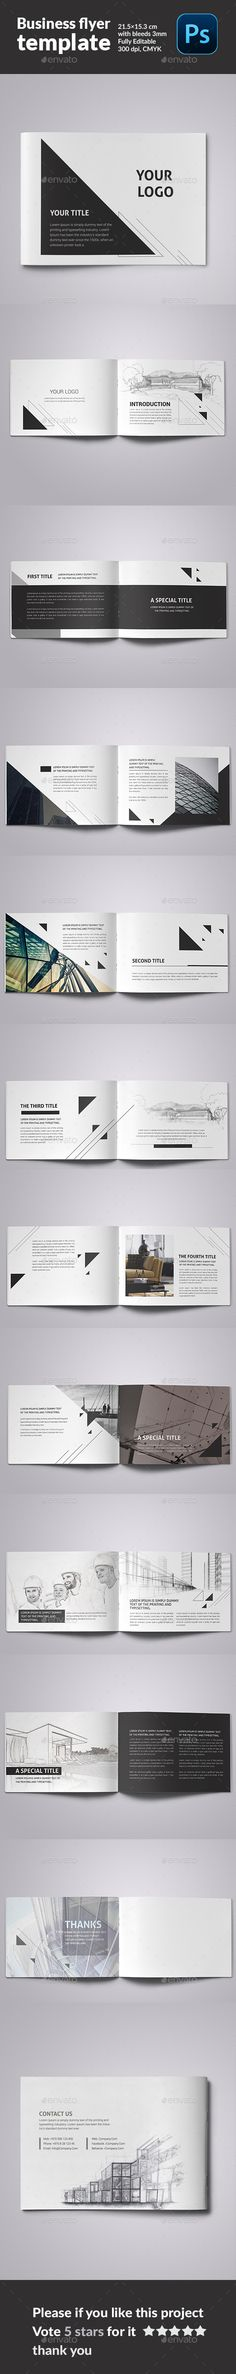 Minimal Architecture Brochure Template #design #broschüre Download: http://graphicriver.net/item/minimal-architecture-brochure_fb/12274779?ref=ksioks